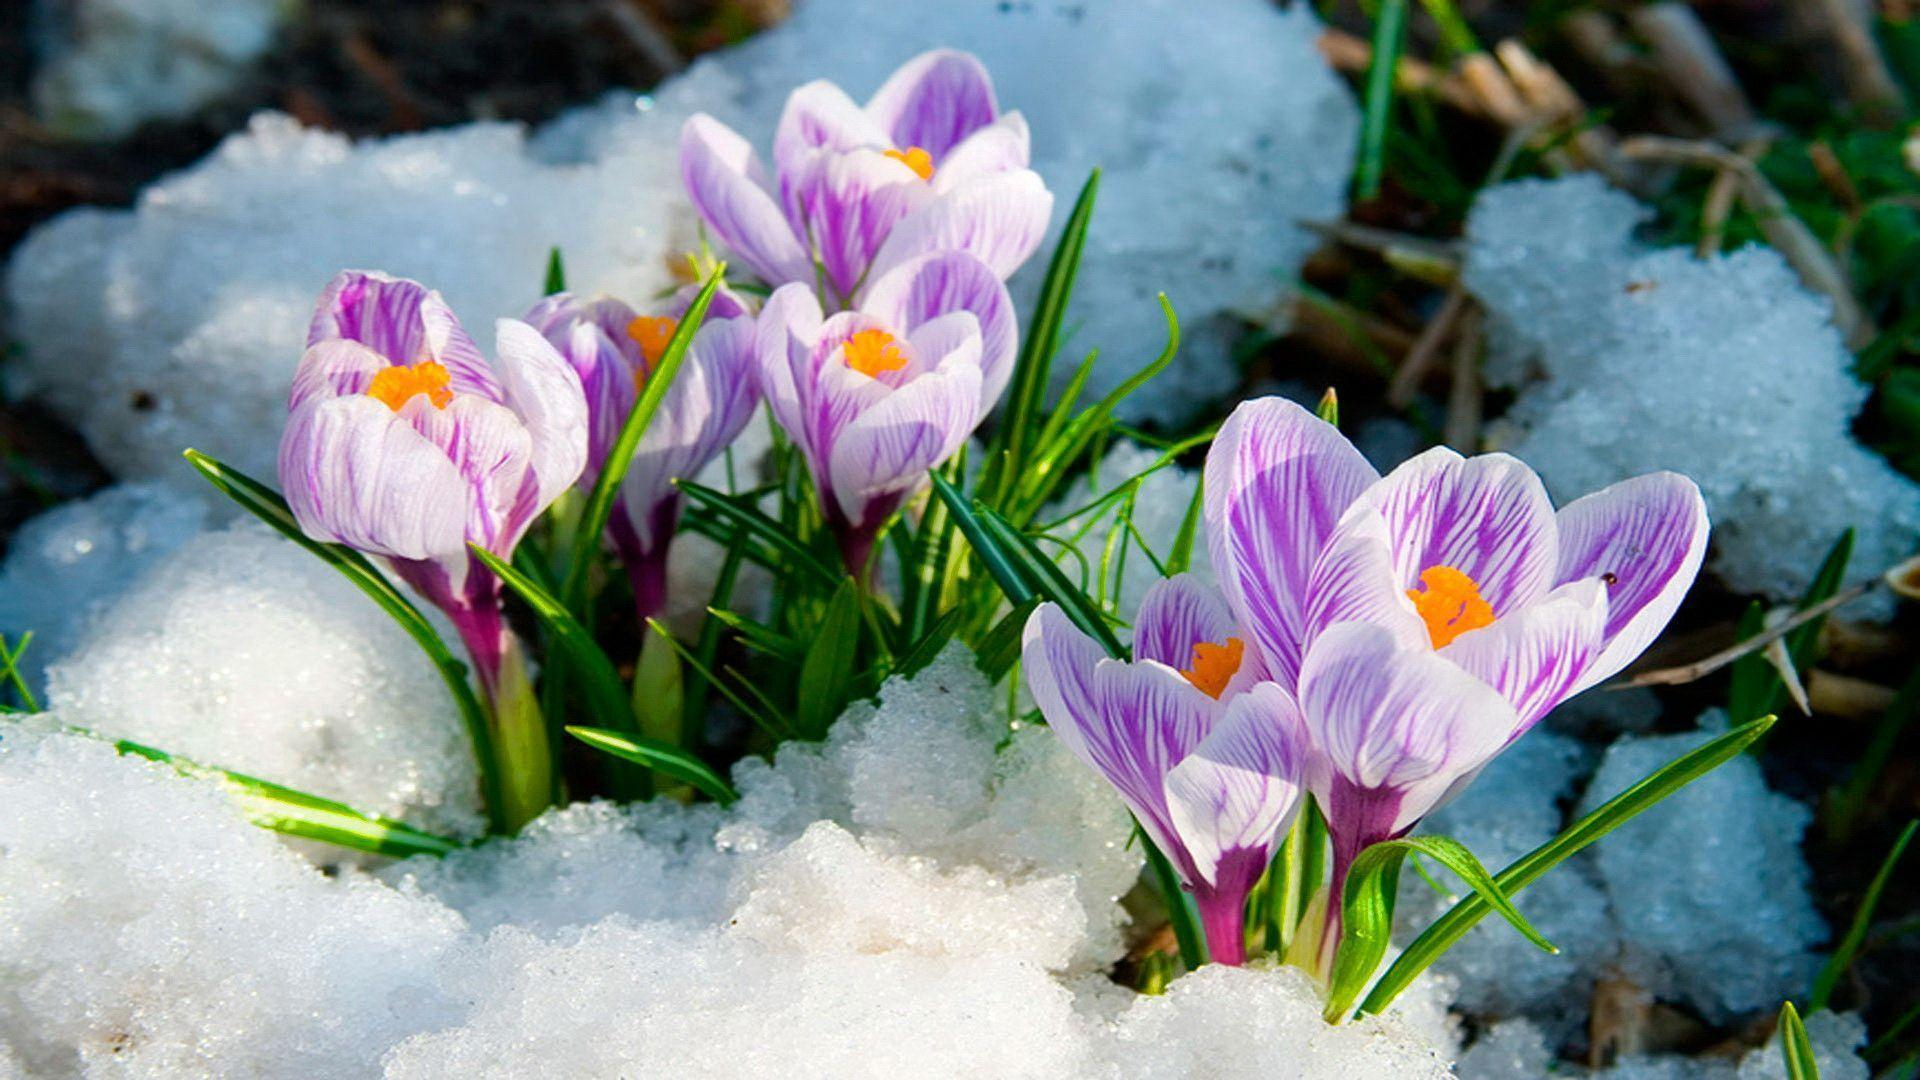 Wallpapers Spring Flowers - Wallpaper Cave